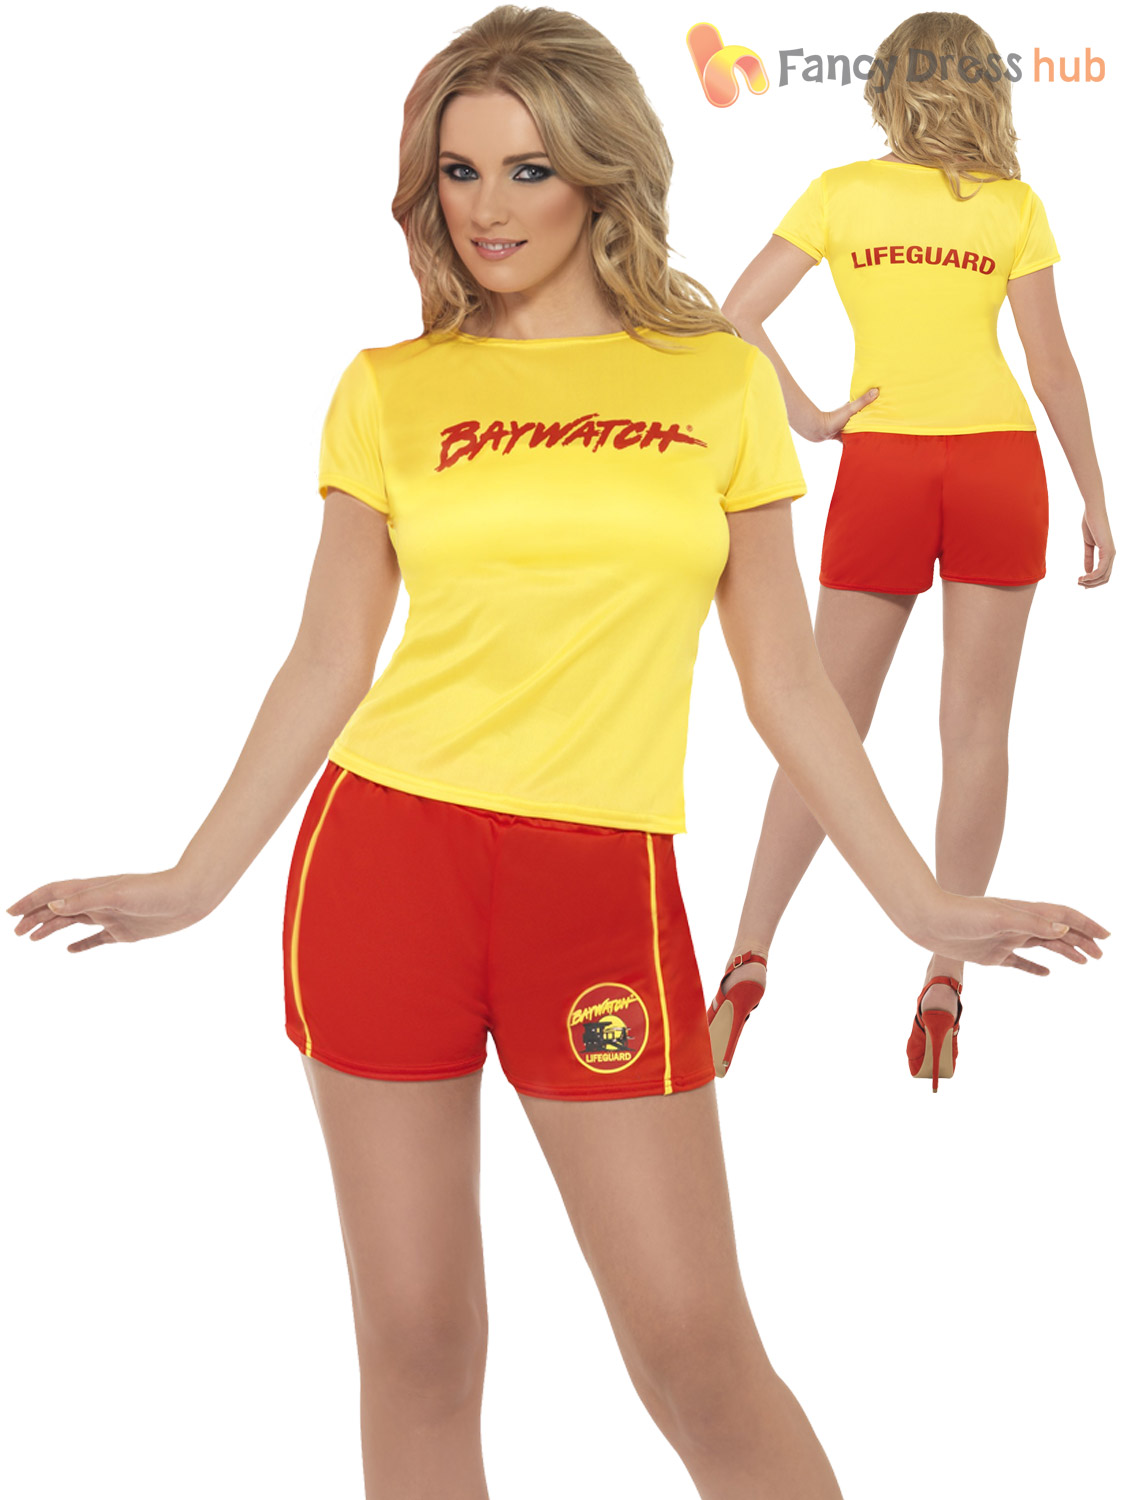 Ladies-Baywatch-Fancy-Dress-Beach-Lifeguard-Sexy-Swimsuit-  sc 1 st  eBay & Ladies Baywatch Fancy Dress Beach Lifeguard Sexy Swimsuit Hen Party ...